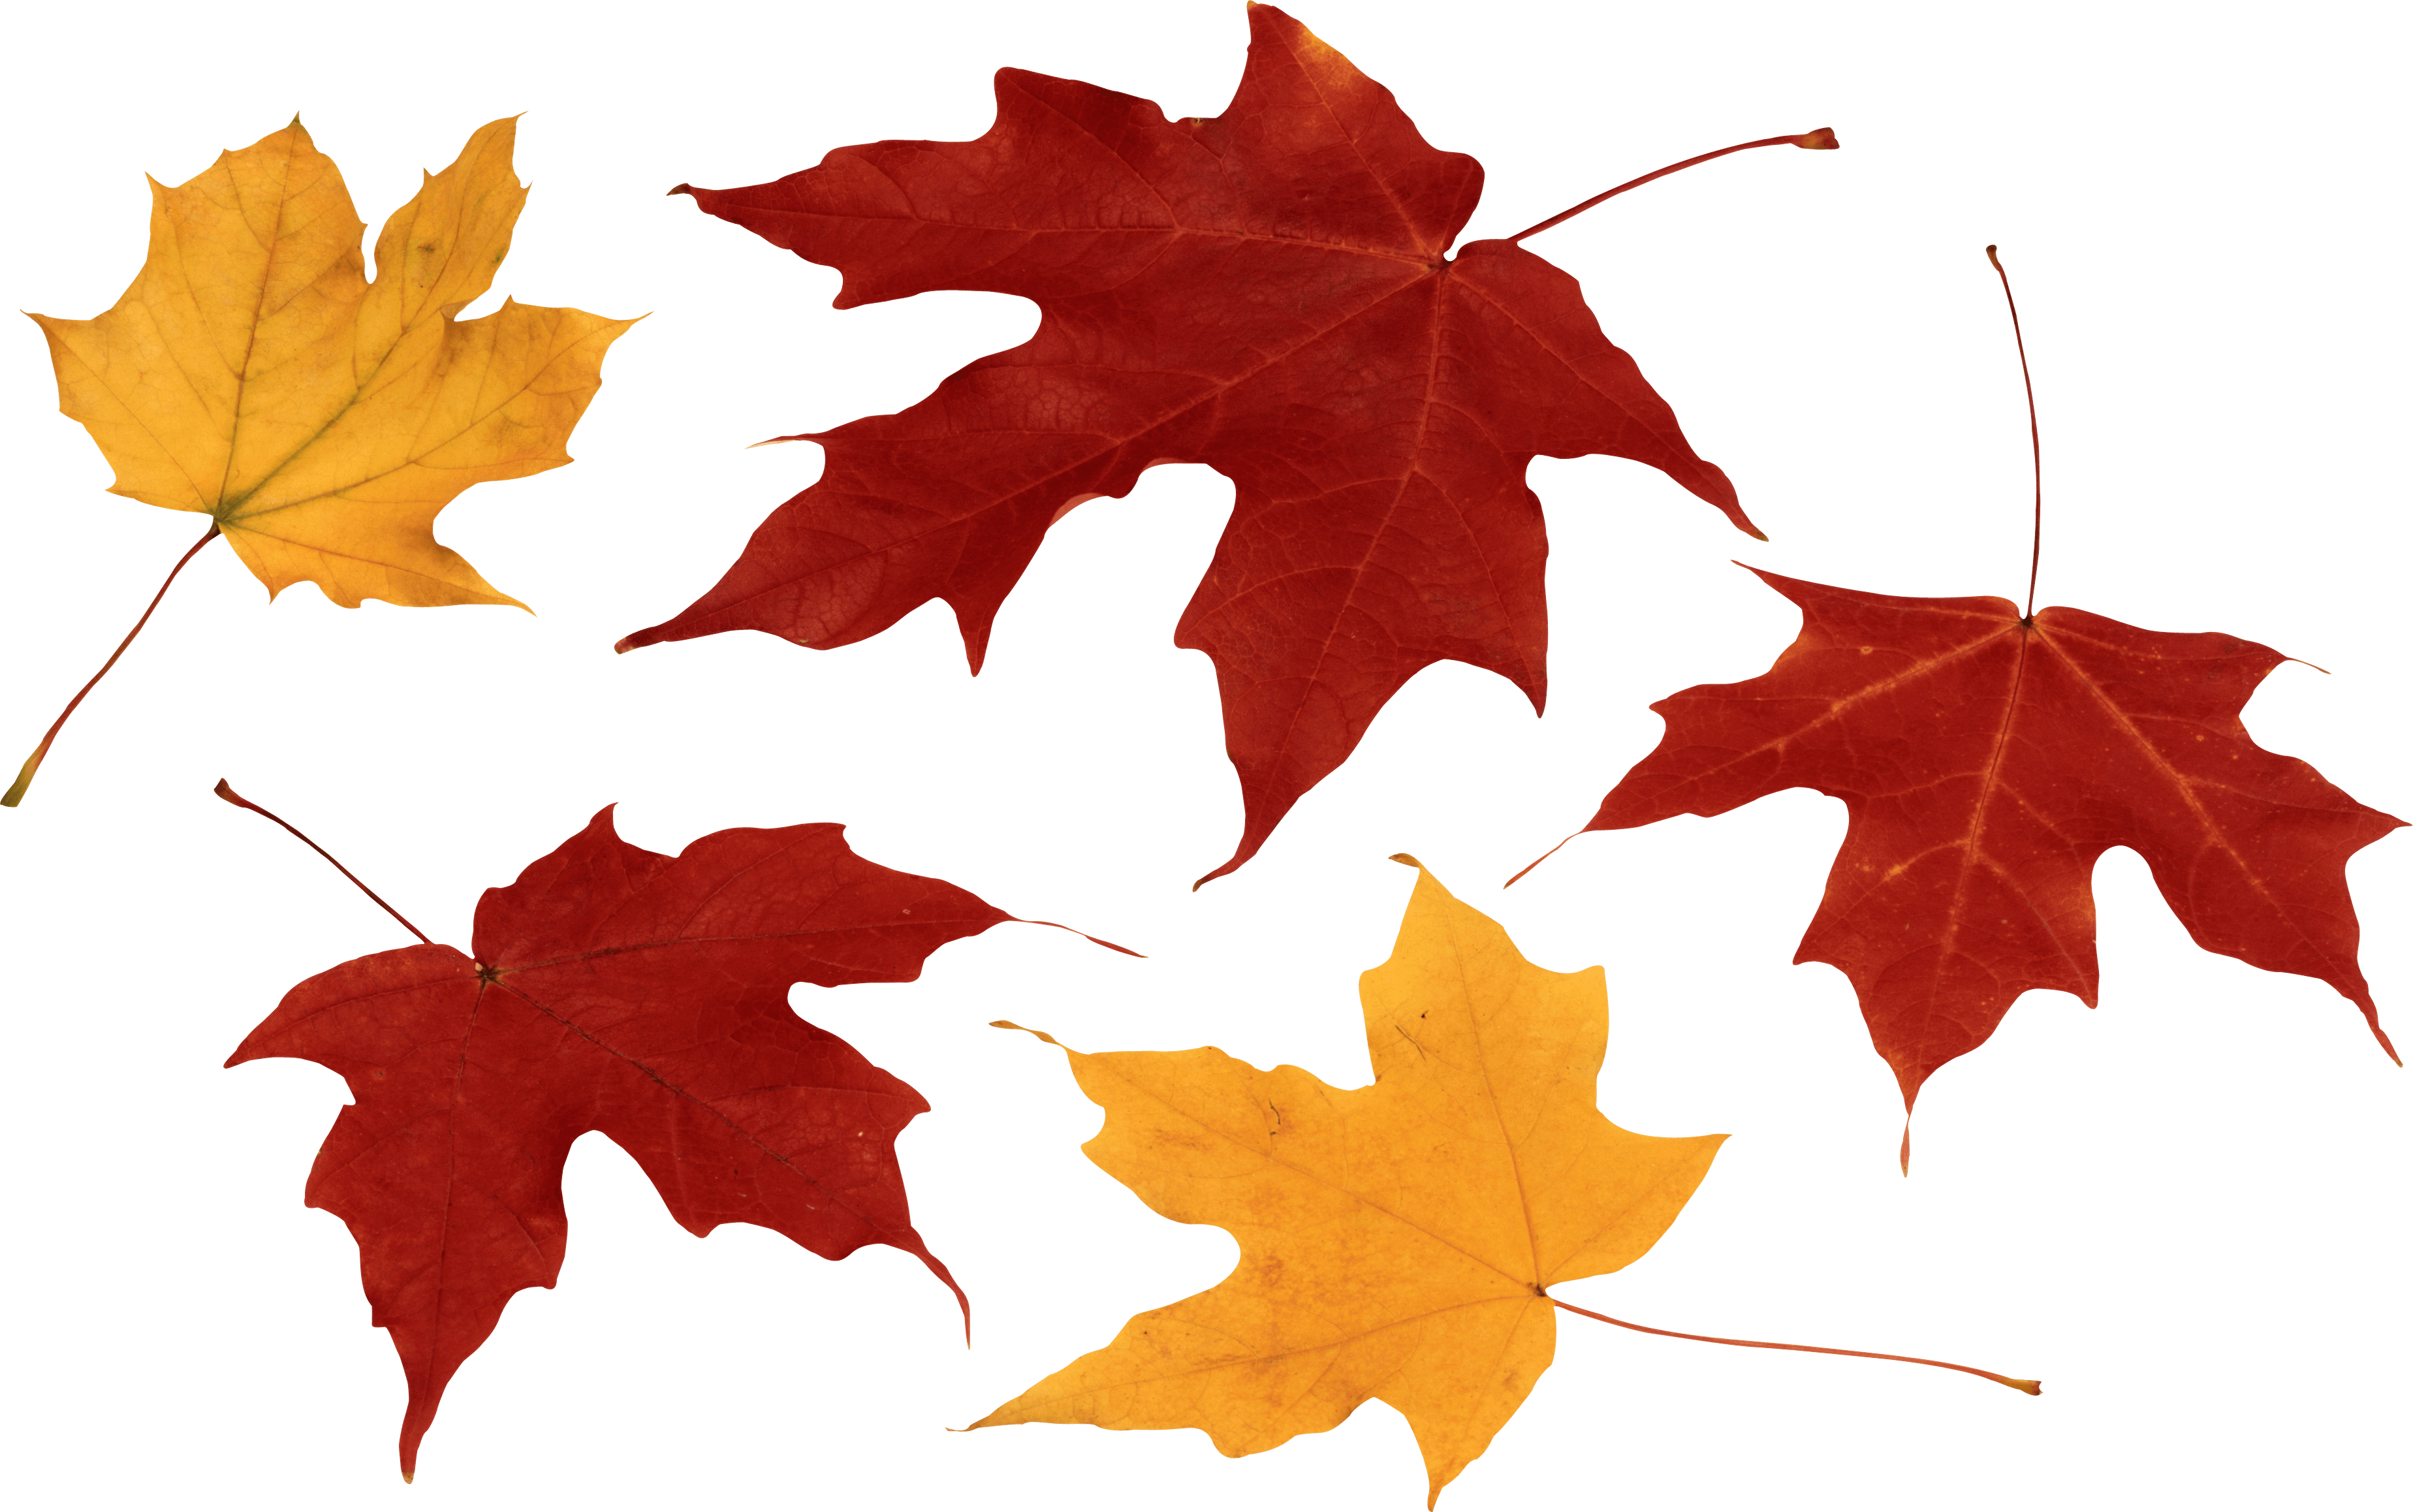 Leaves Png Pesquisa Google Png Images Autumn Leaves Png